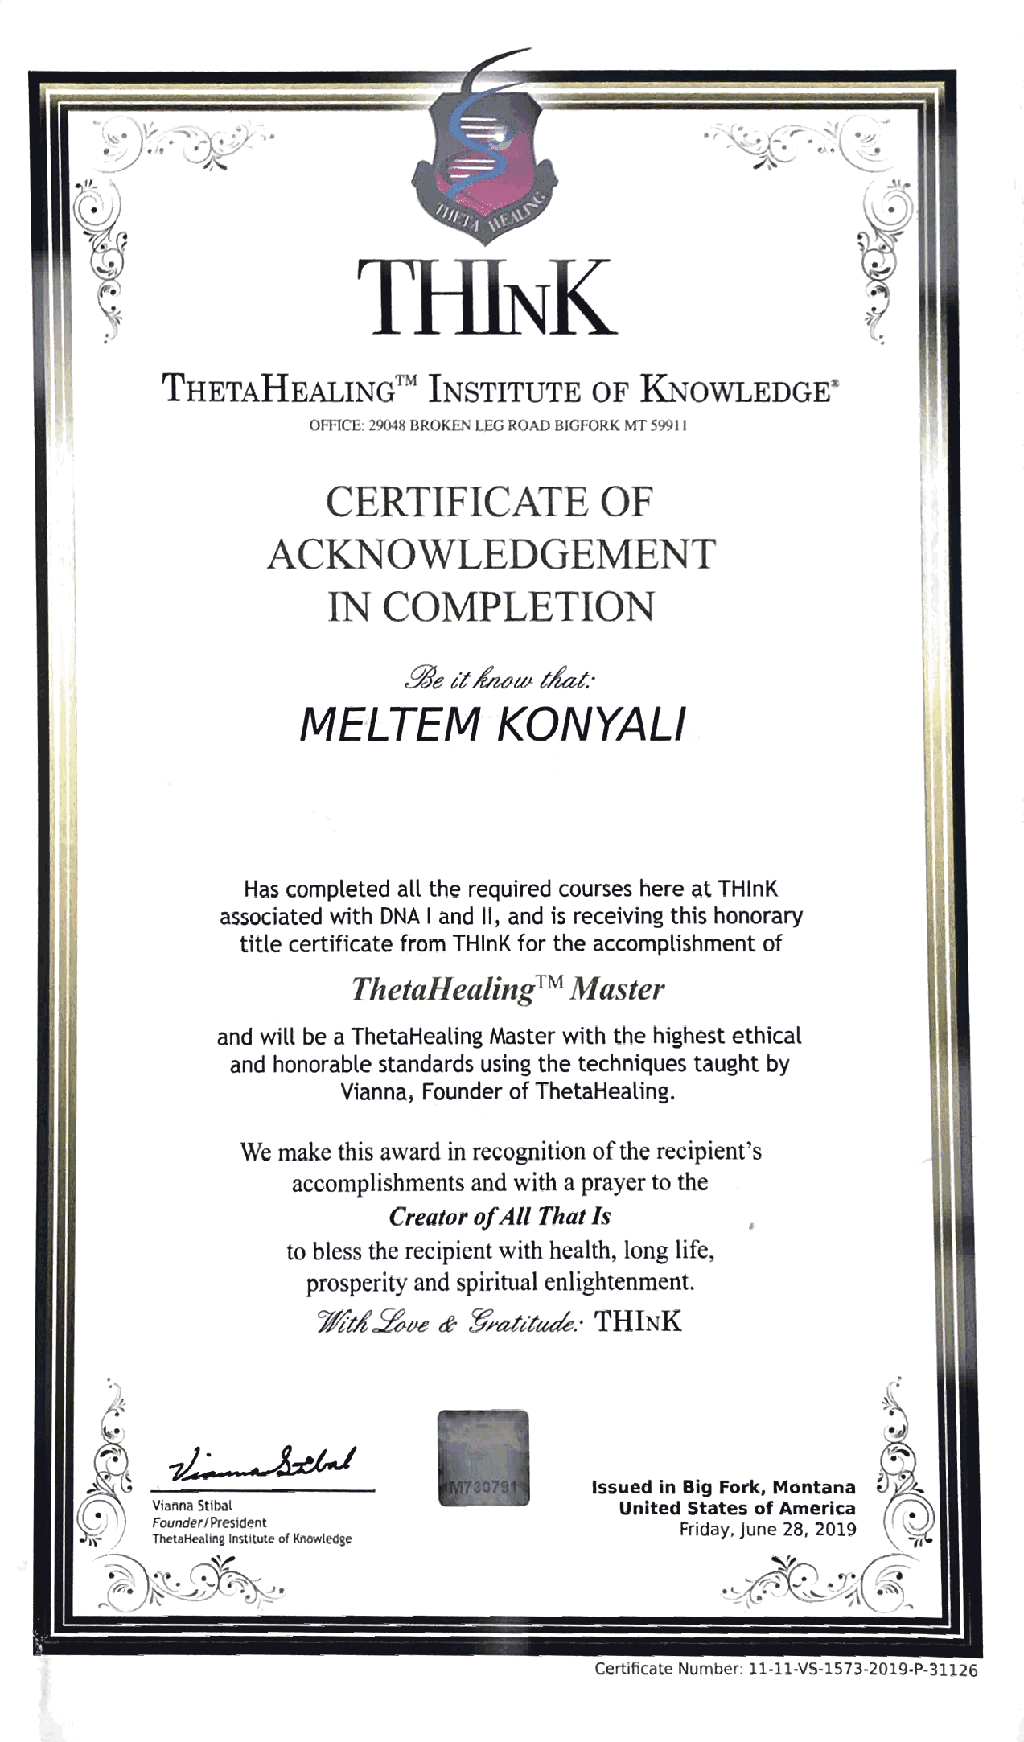 acknowledgement-in-completionb